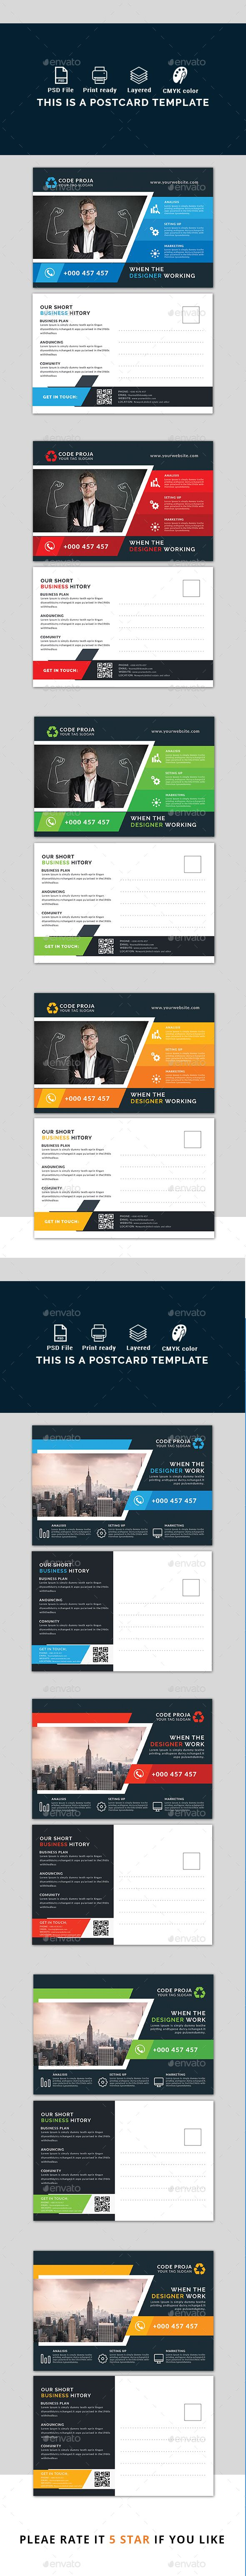 38 best print images on pinterest postcard template design